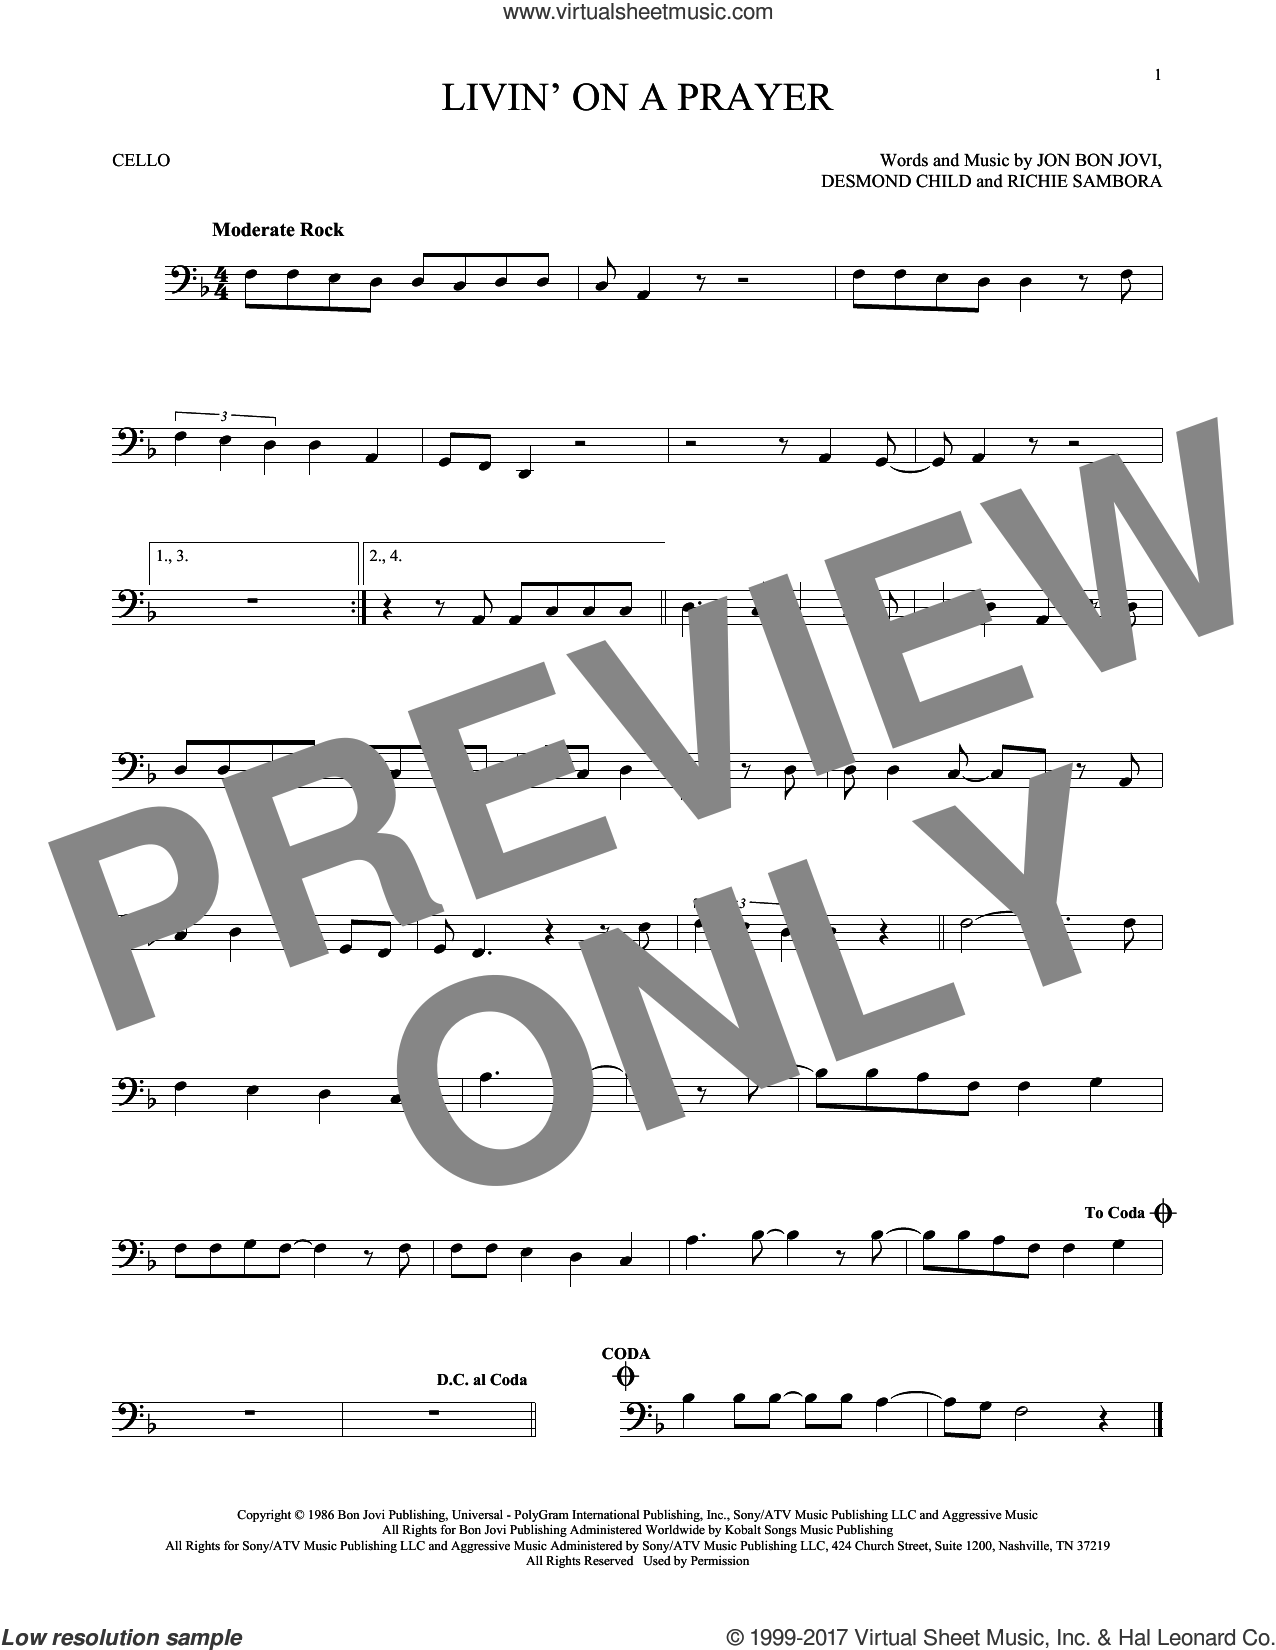 Livin' On A Prayer sheet music for cello solo by Bon Jovi, Desmond Child and Richie Sambora, intermediate skill level